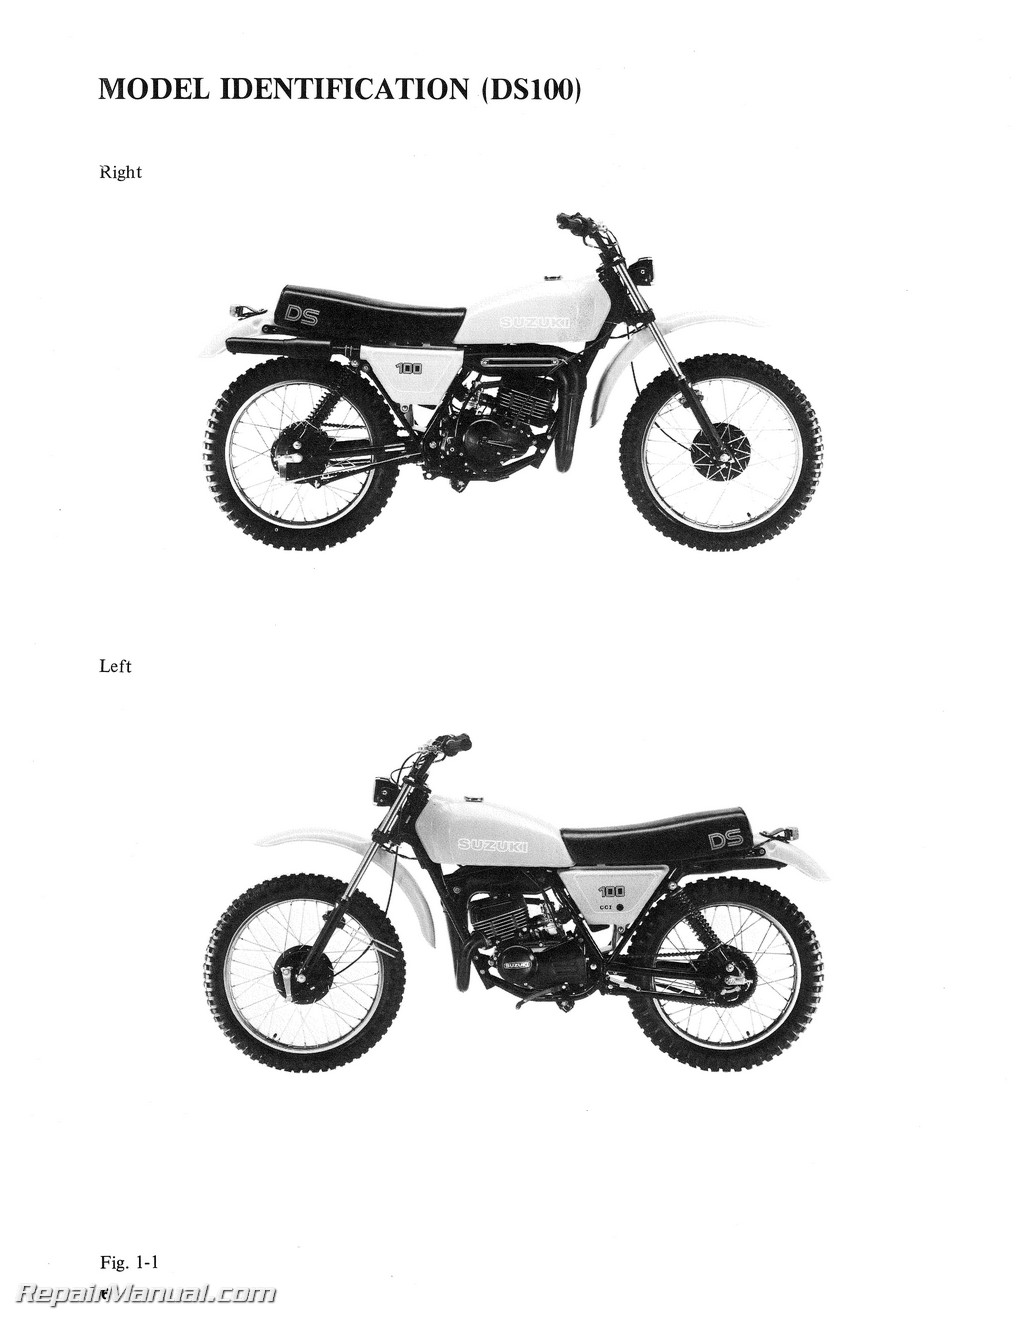 Suzuki Ds100 Ds125 Motorcycle Service Manual